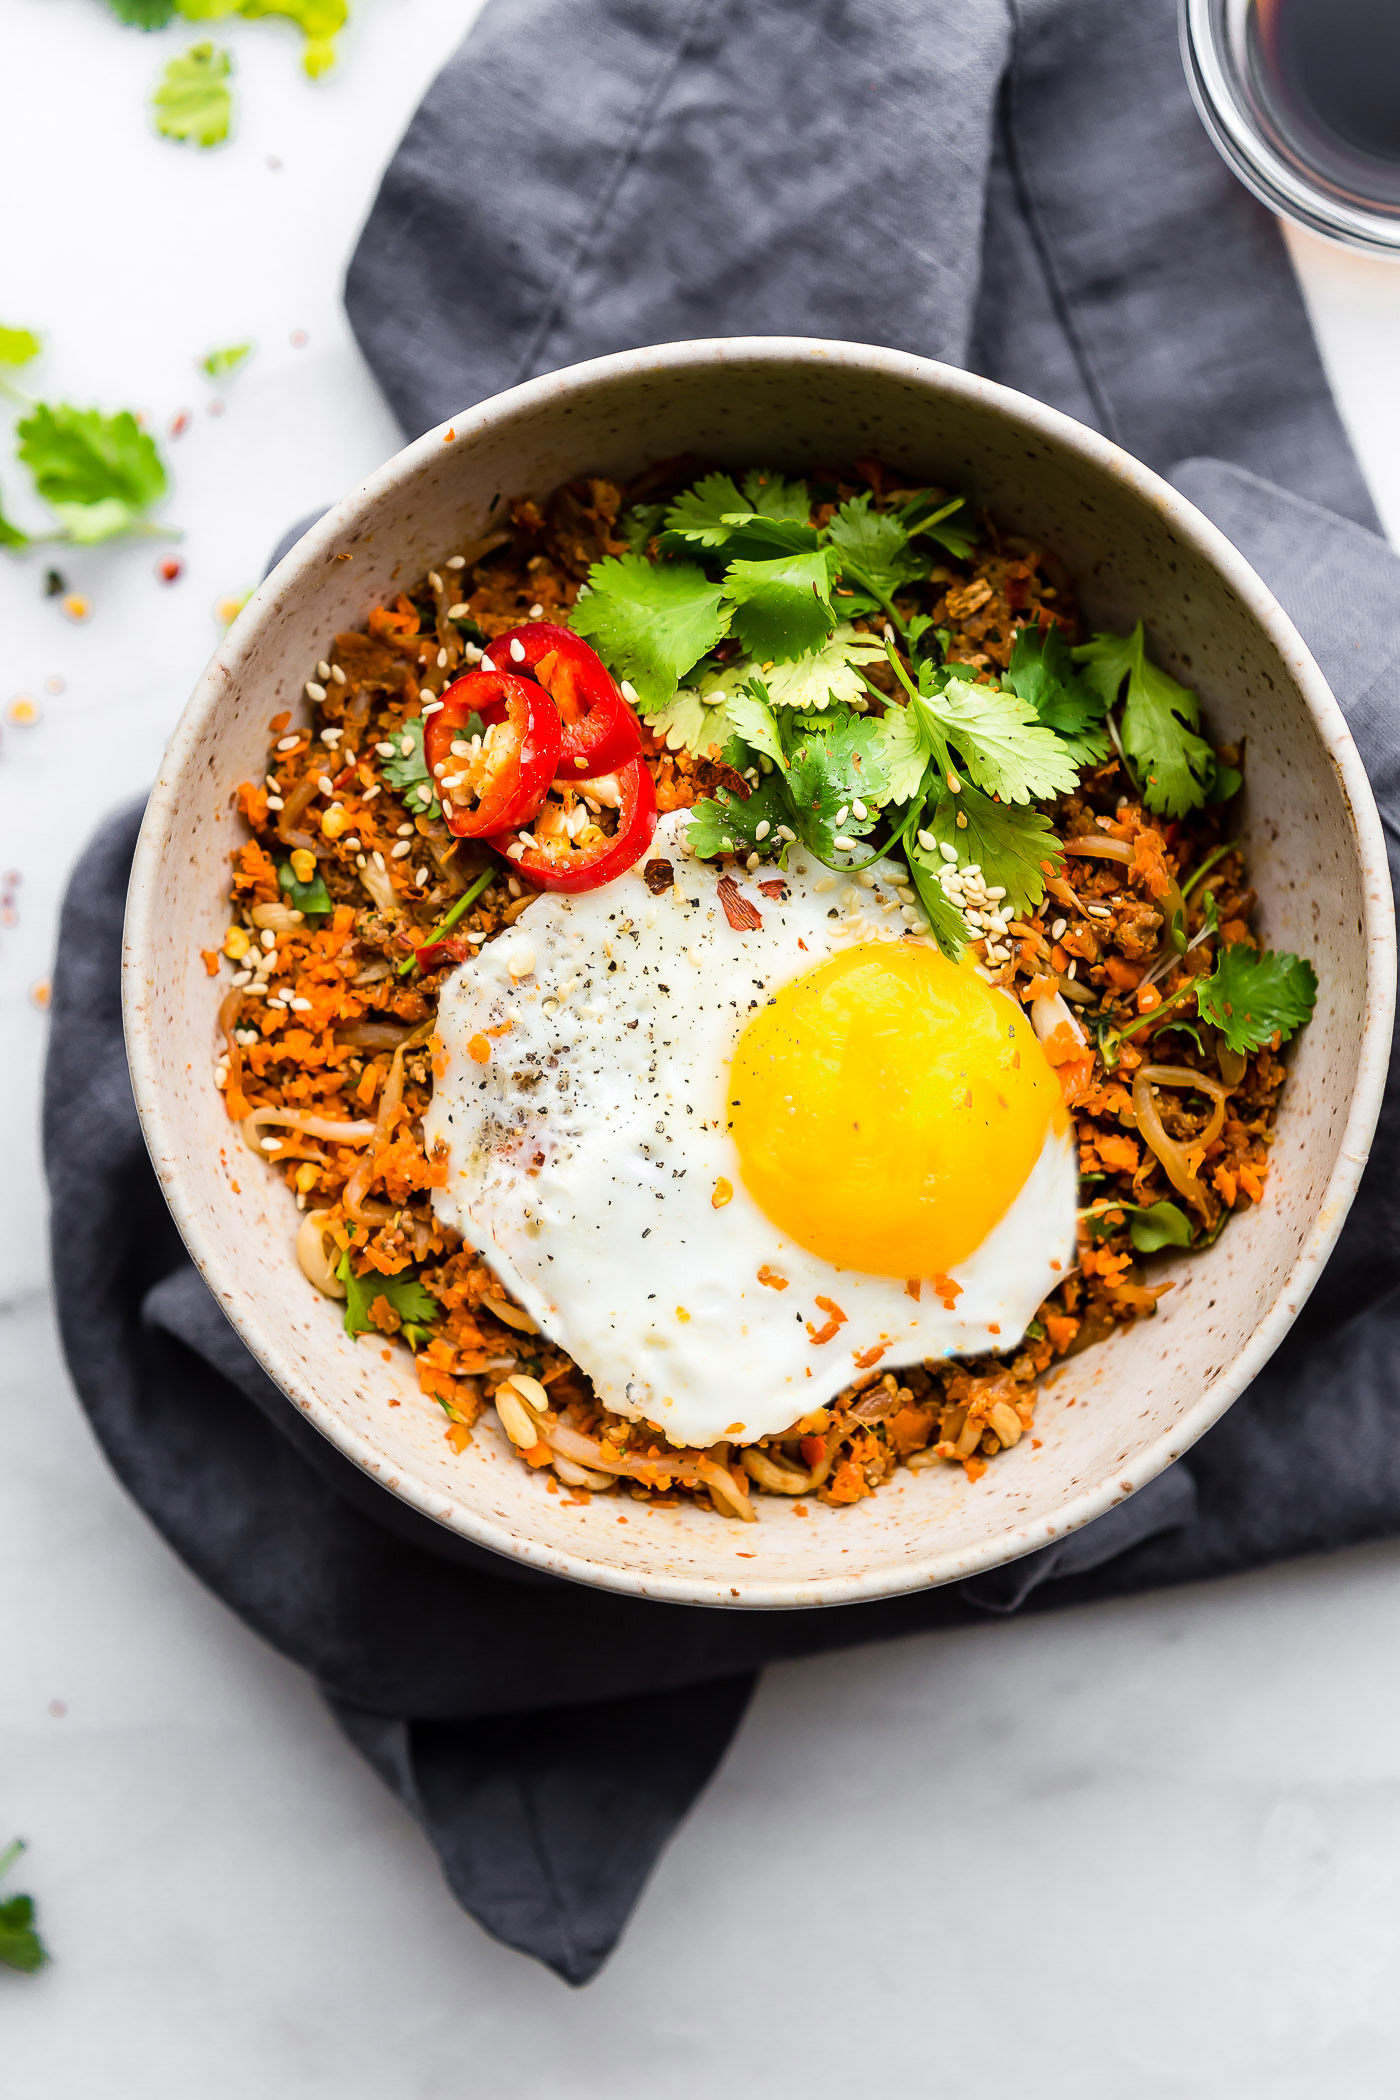 spicy Nasi Goreng breakfast with fried eggs and sausage